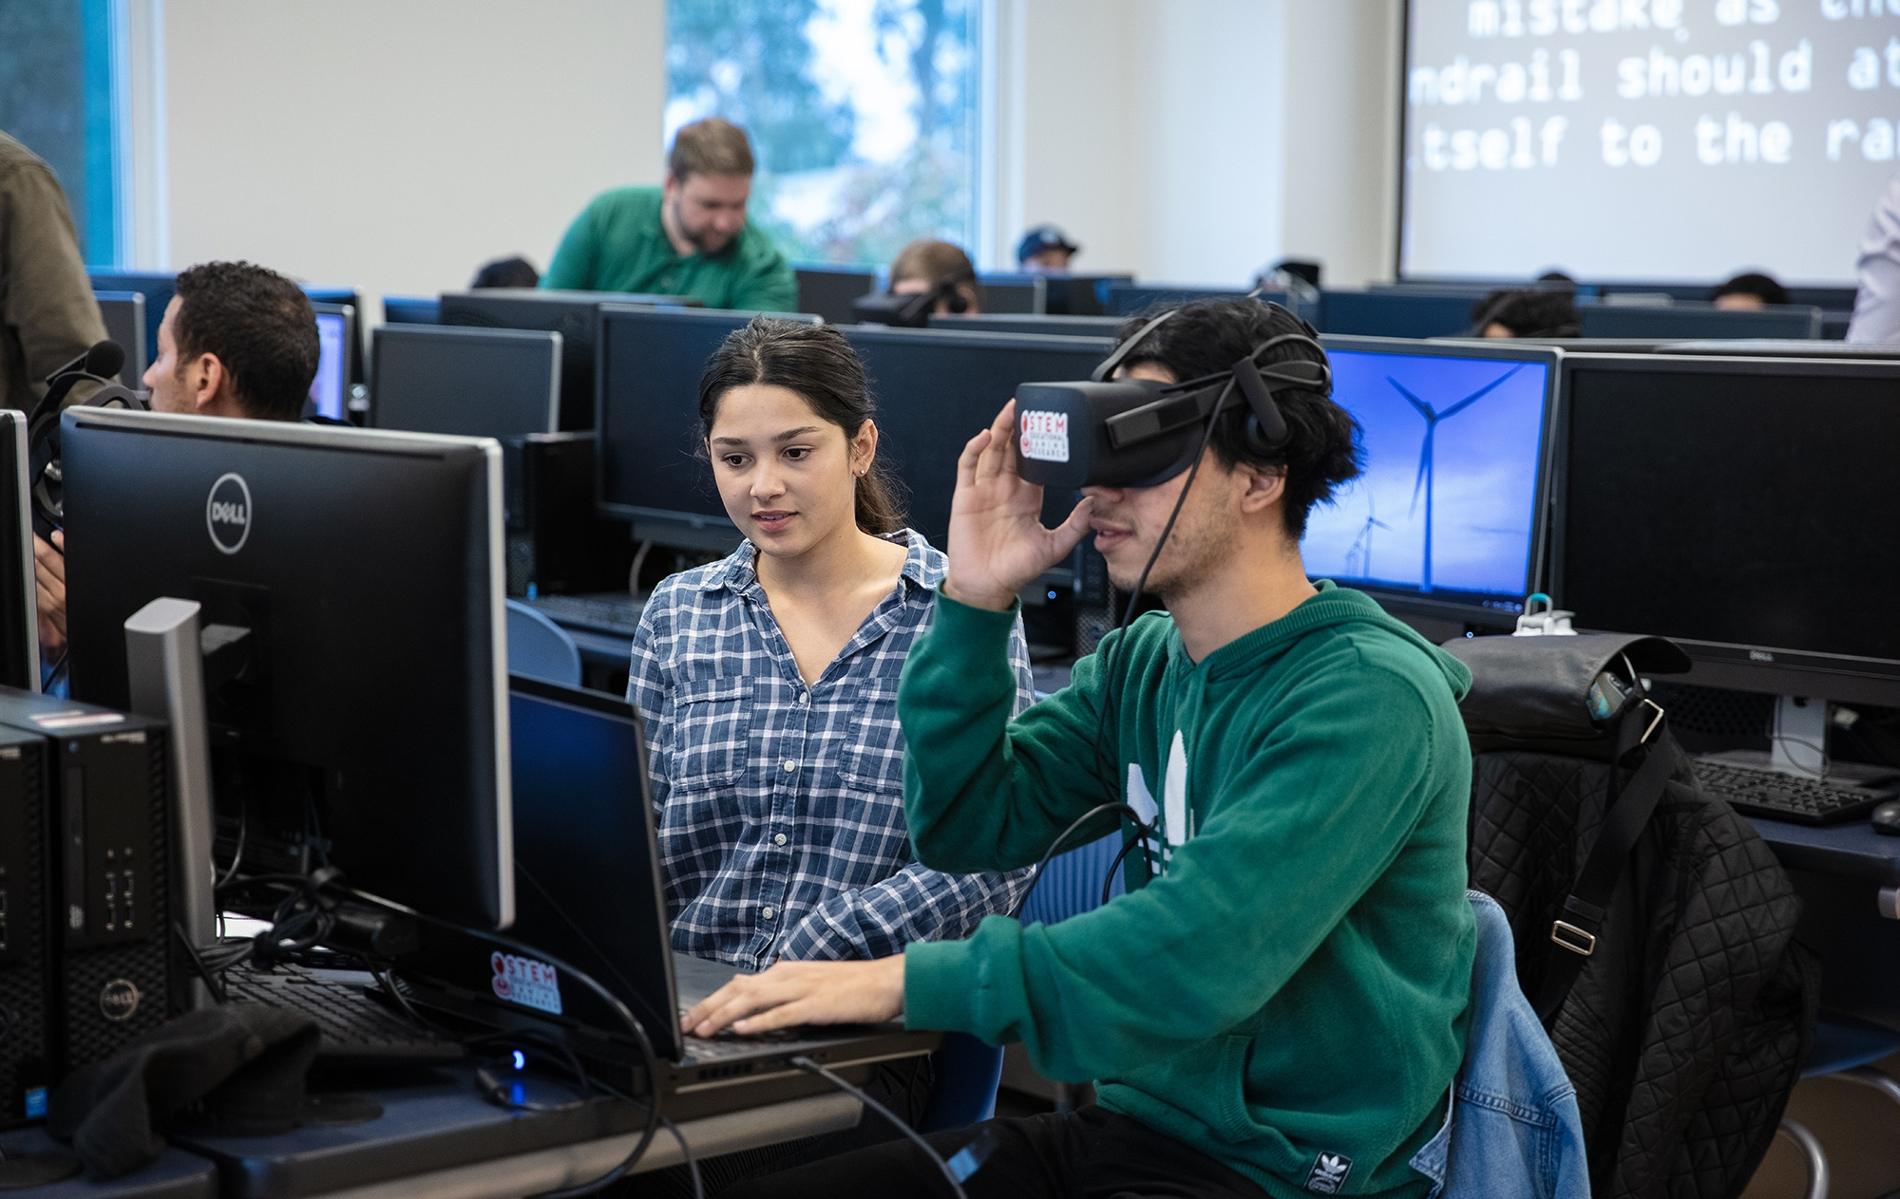 A male student looks at a computer with VR googles on, while a female student watches